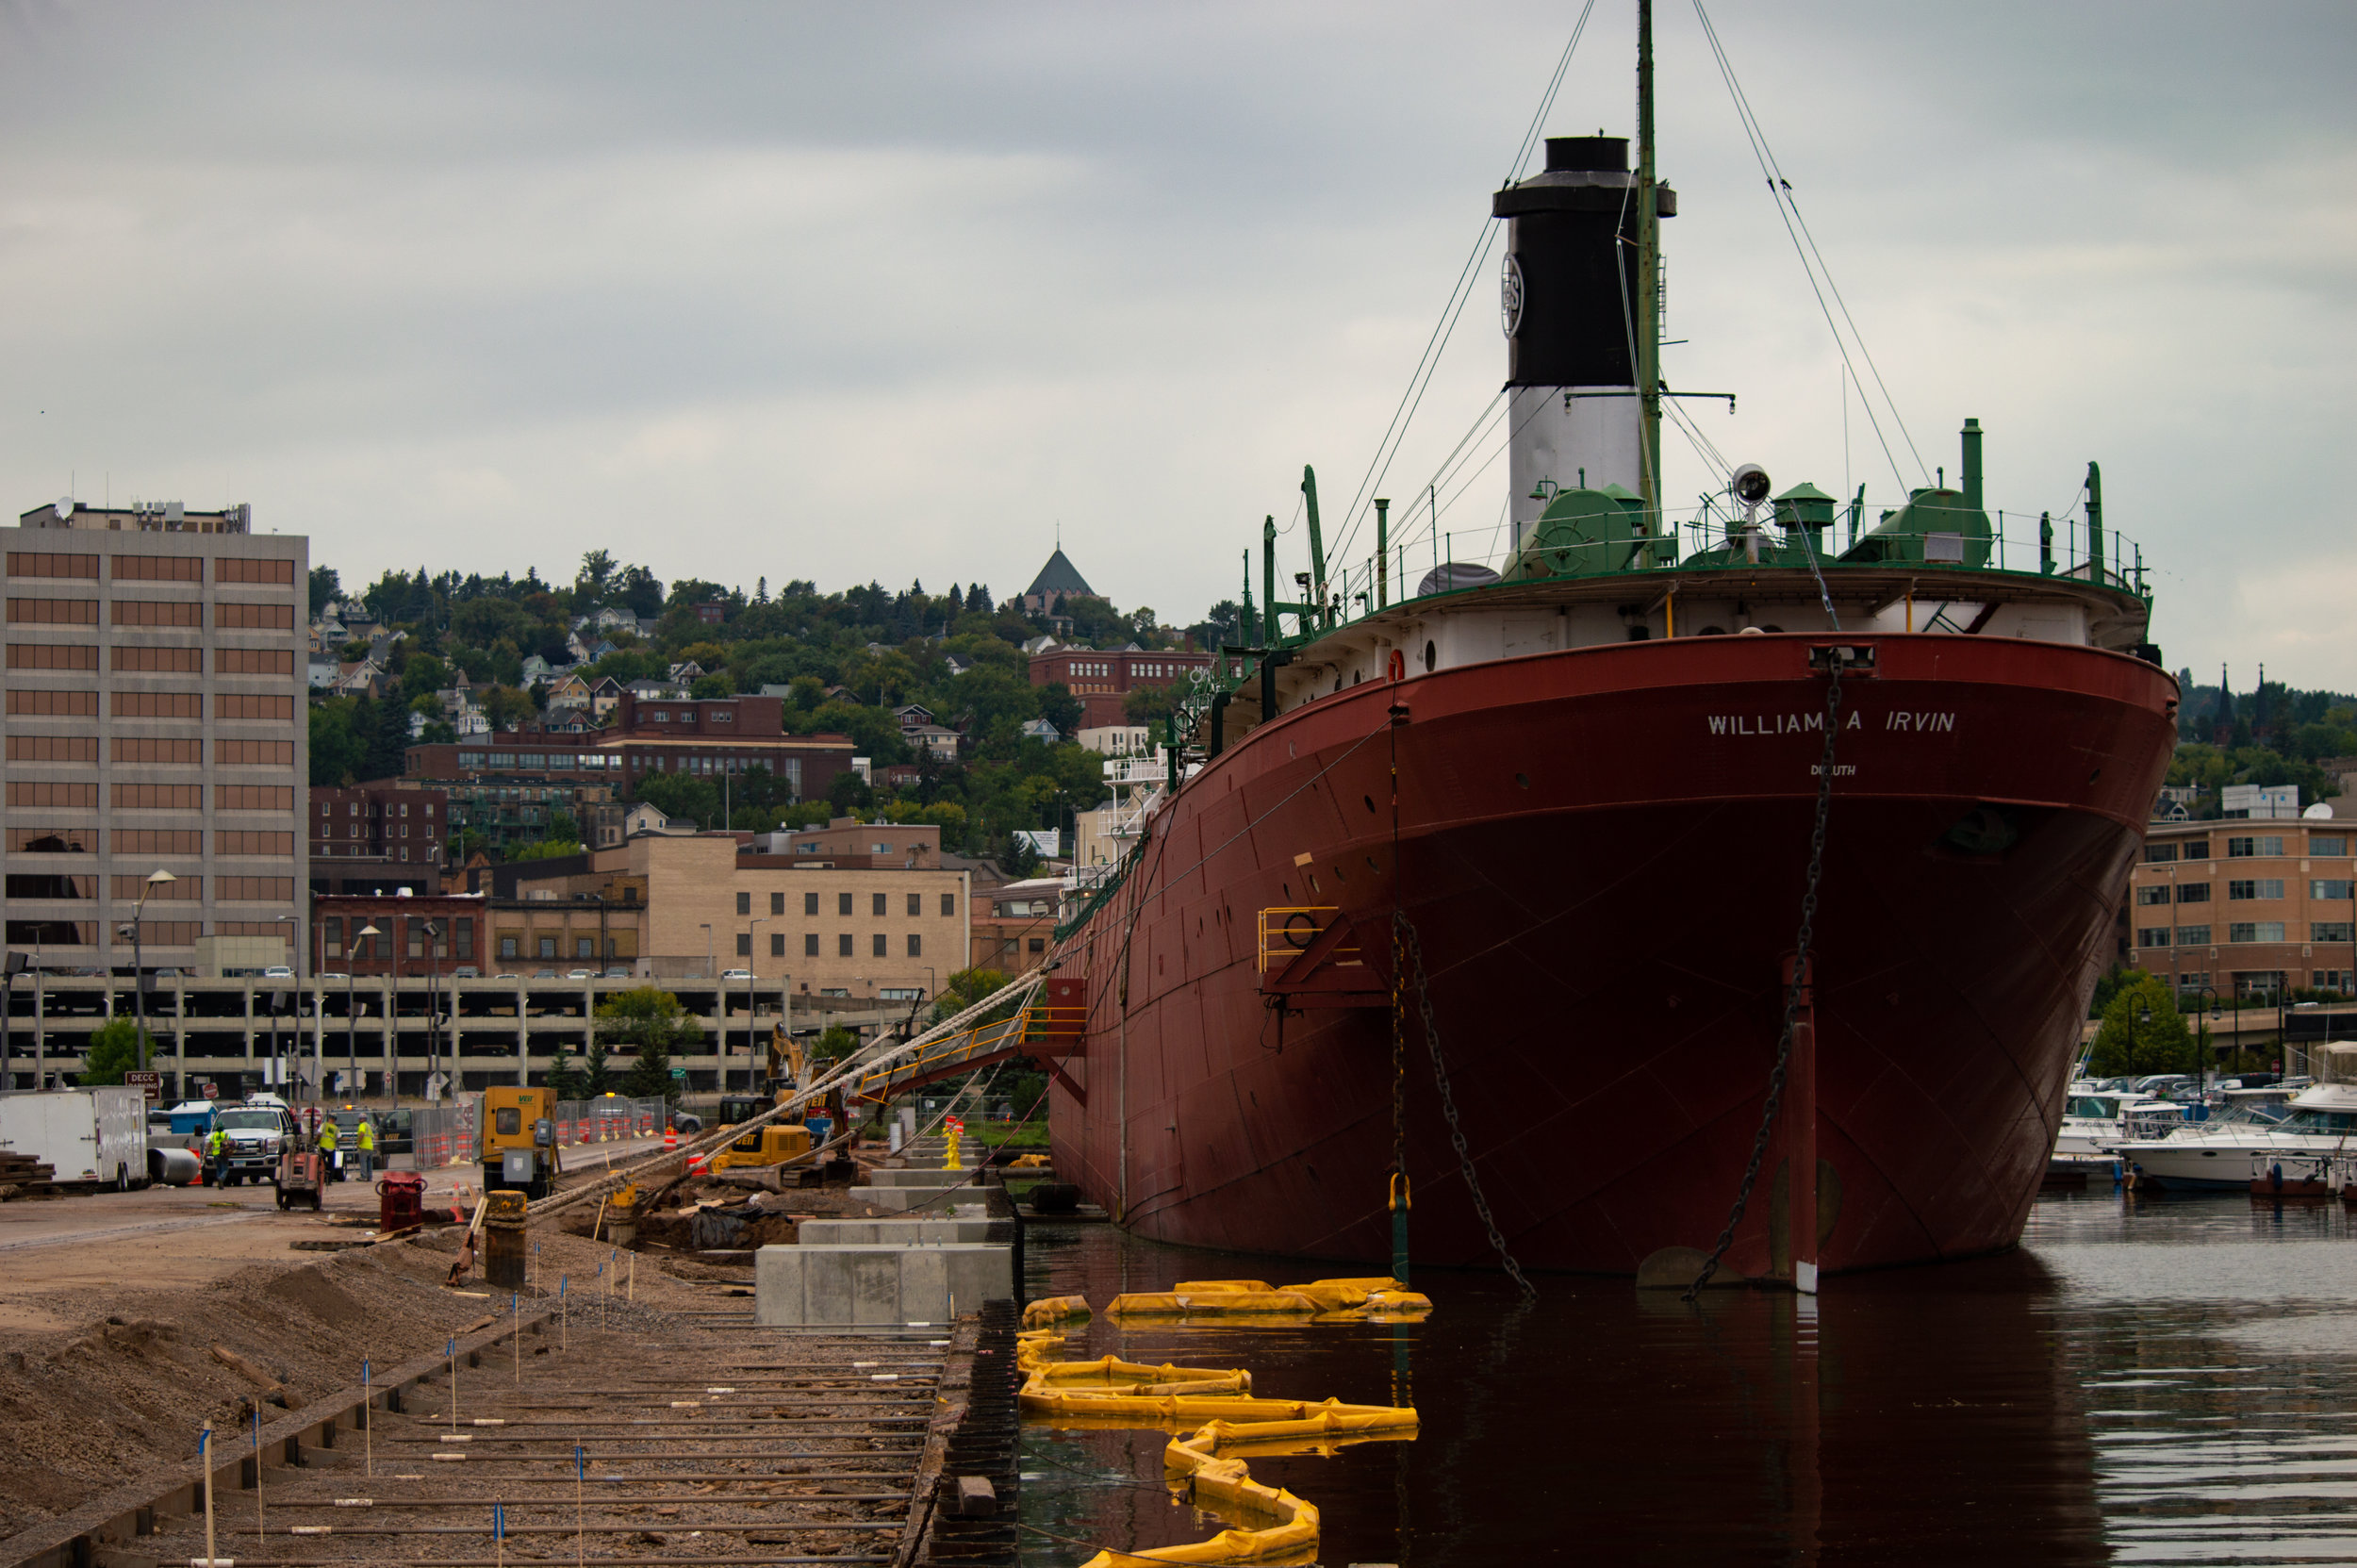 The William A. Irvin undergoing construction on Sept. 14, 2018. The polluted water by the ship does not flow very well, according to Irvin Manager Alexis Archambeau. Photo by Jake Barnard